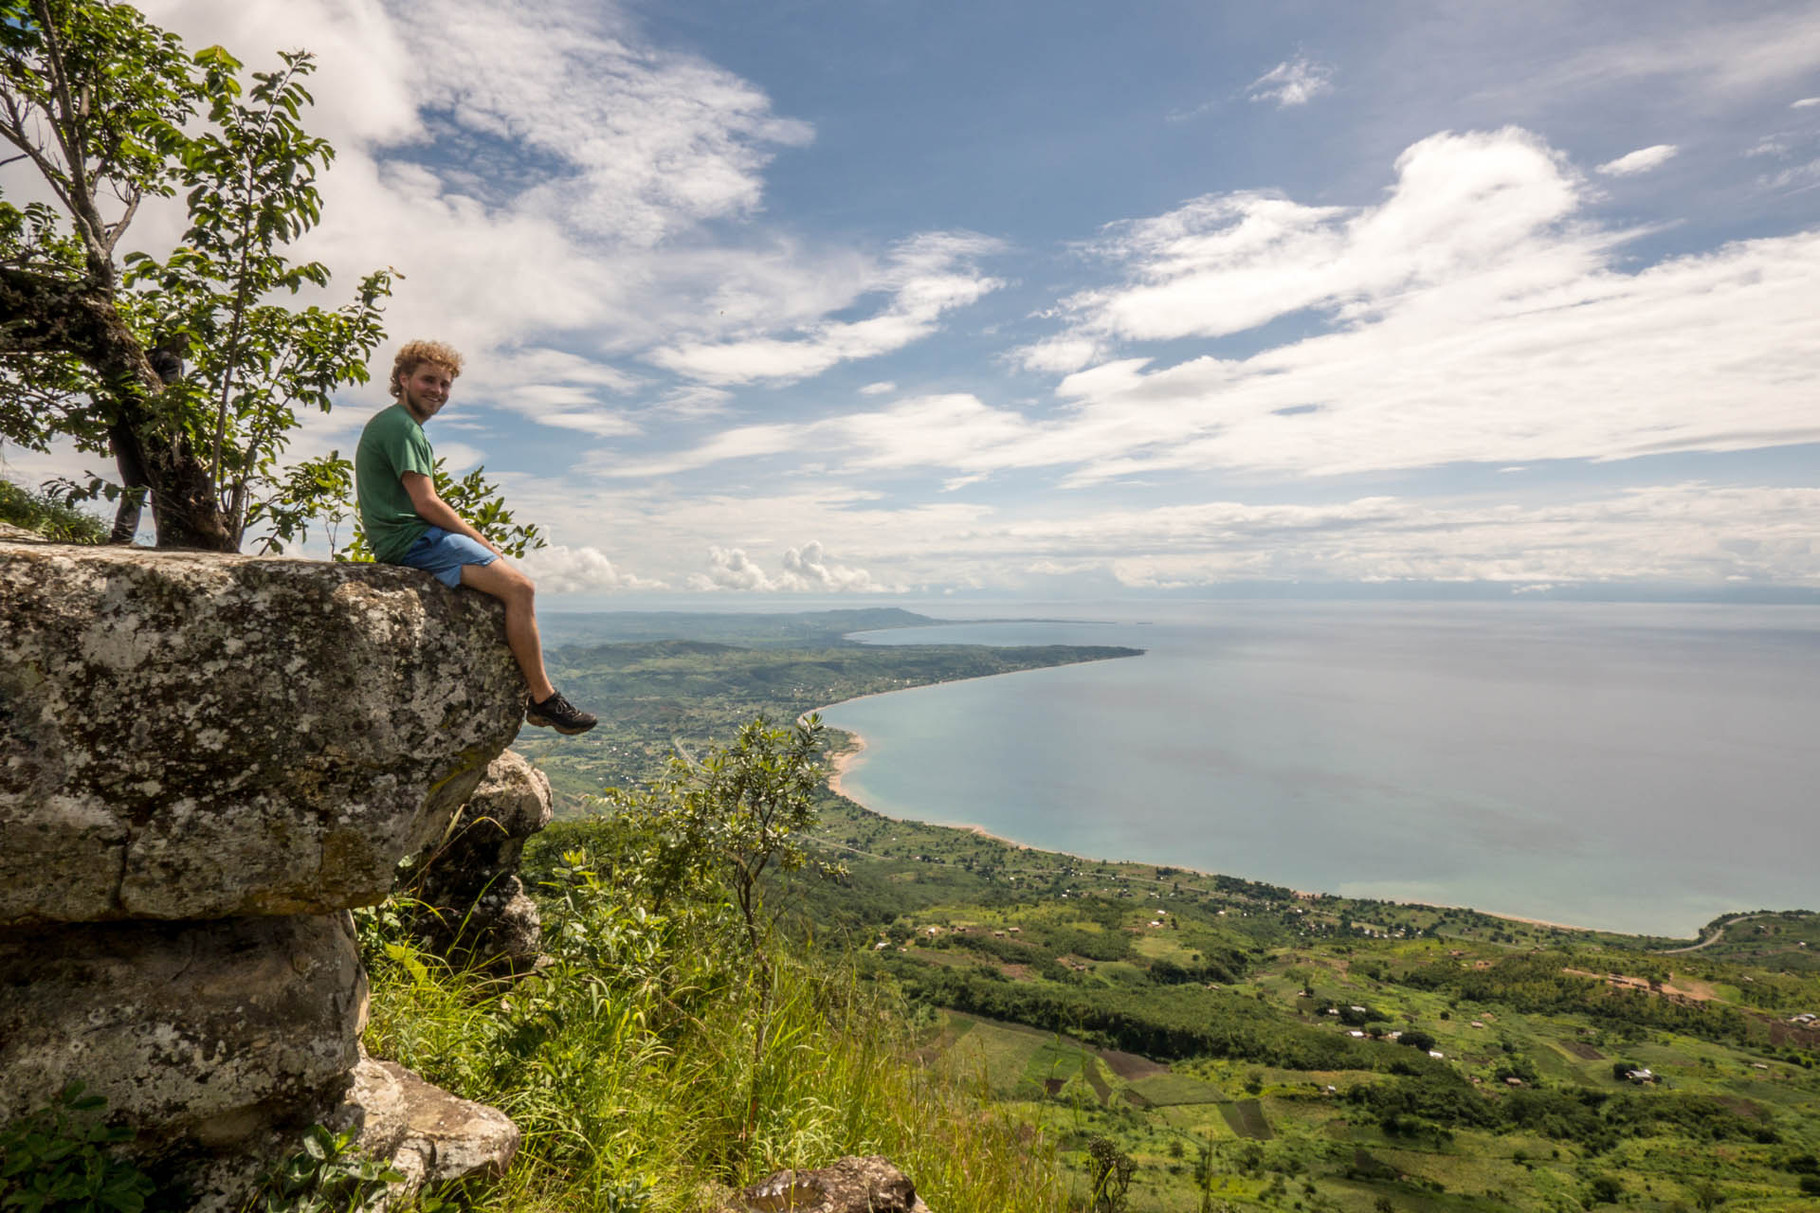 Lake Malawi seen from Chombe table mountain